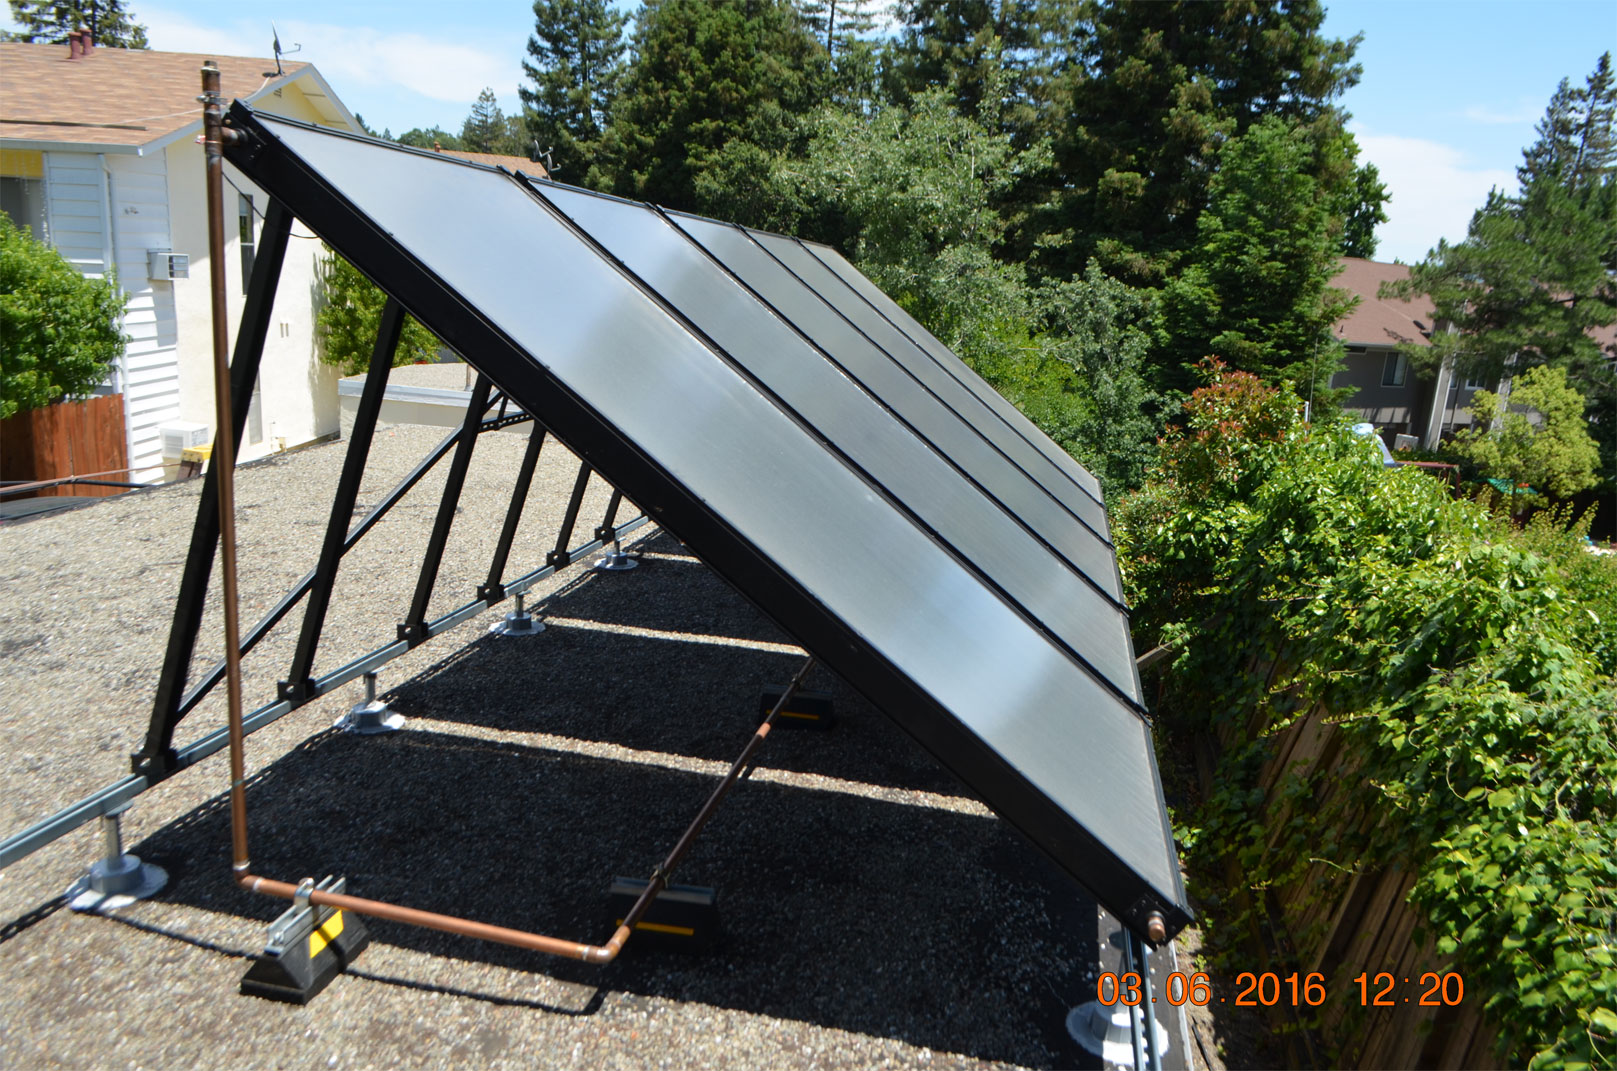 Solar pool panels capture solar energy delivered through the infrared spectrum